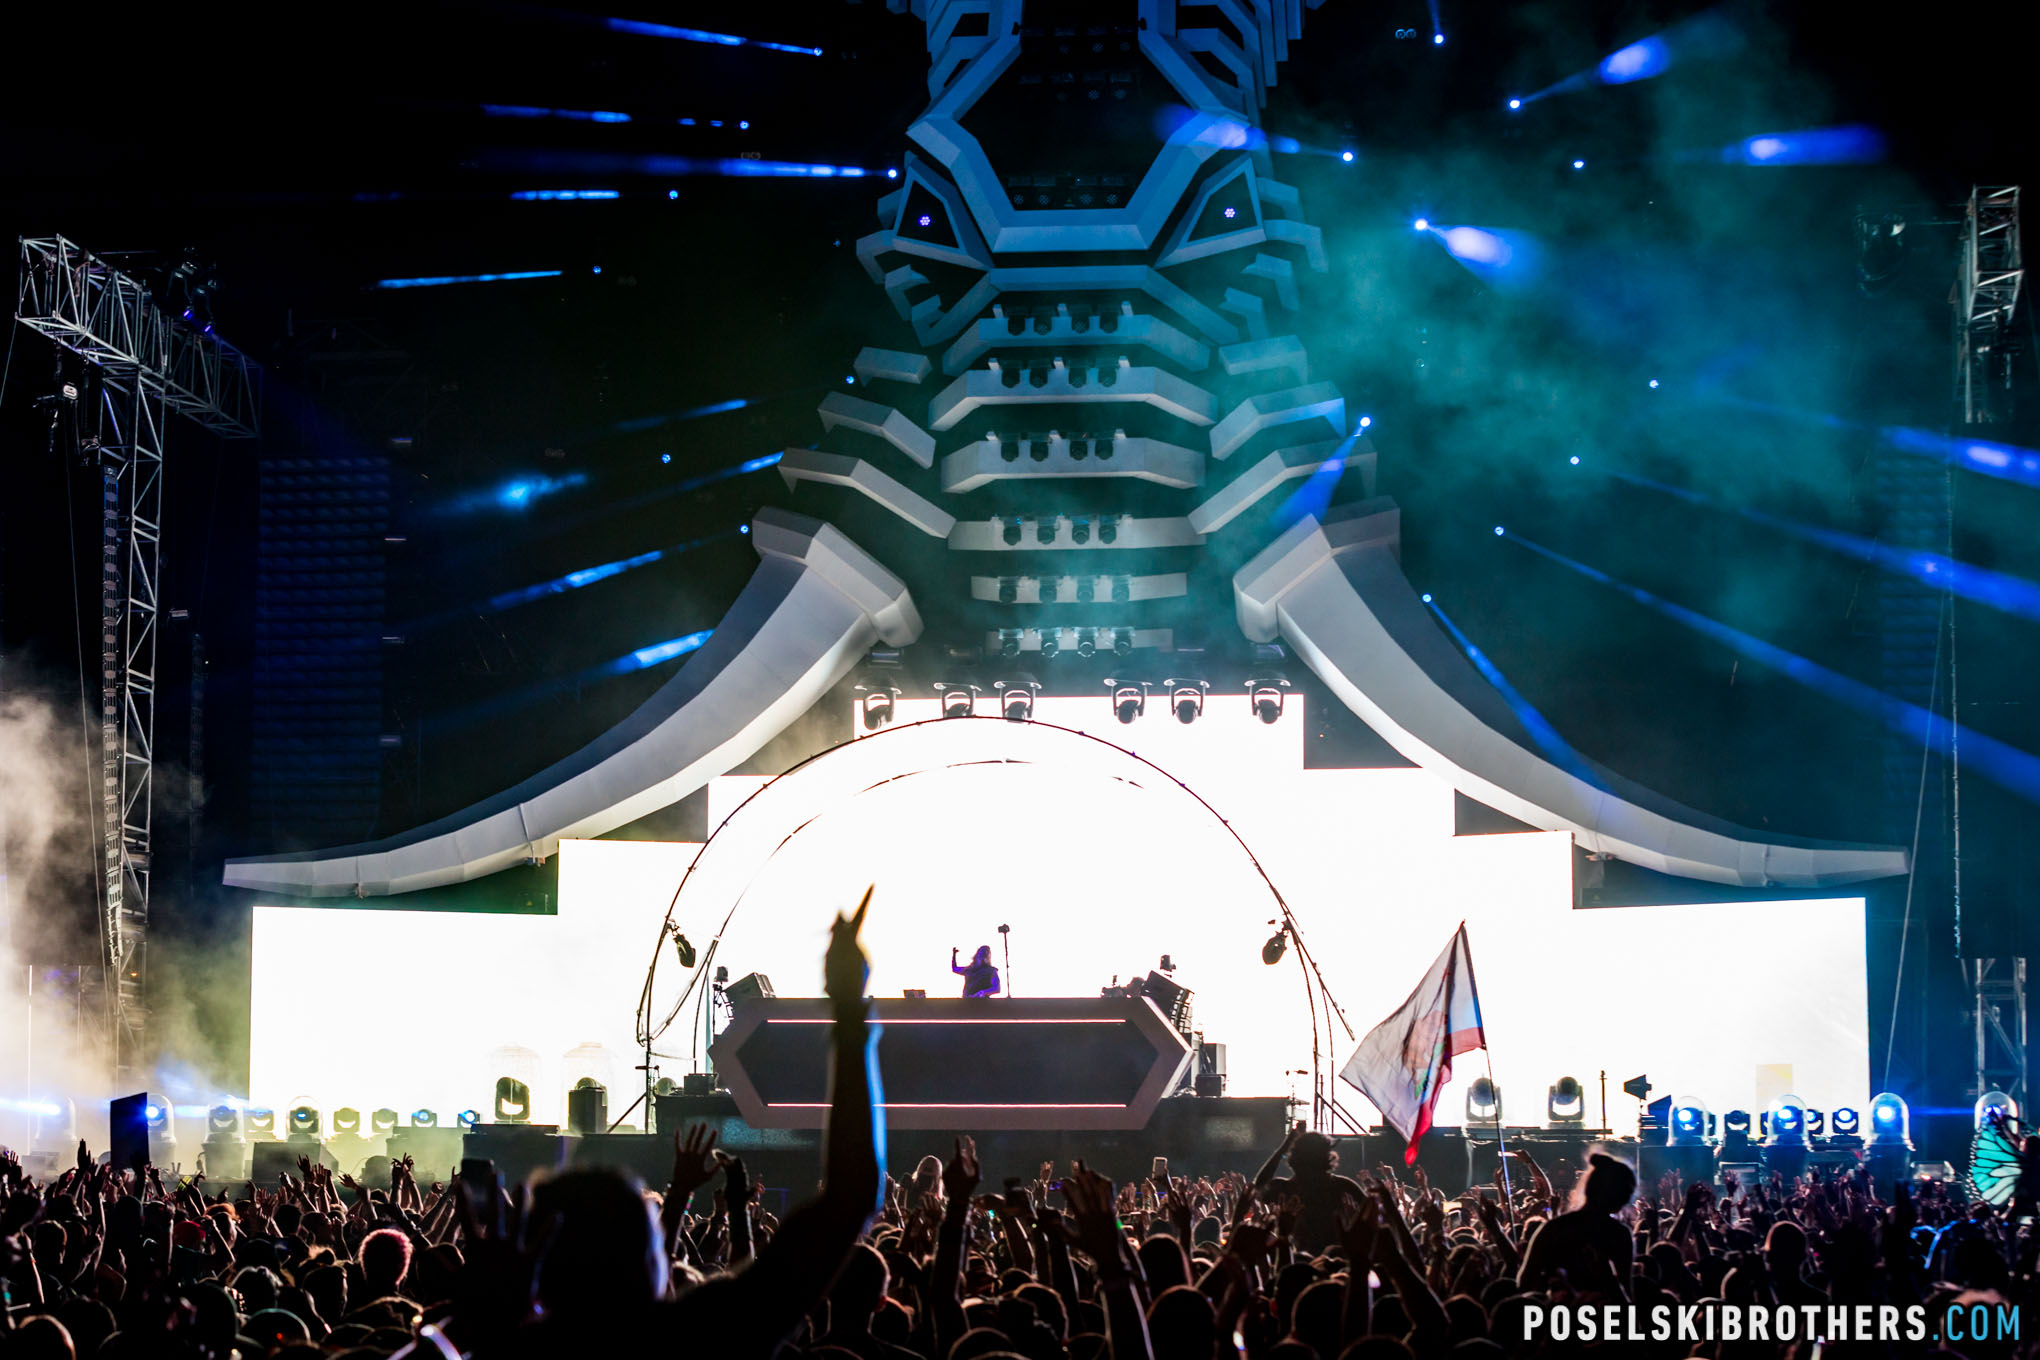 09-01-17 ElectricZooFestival-7.jpg